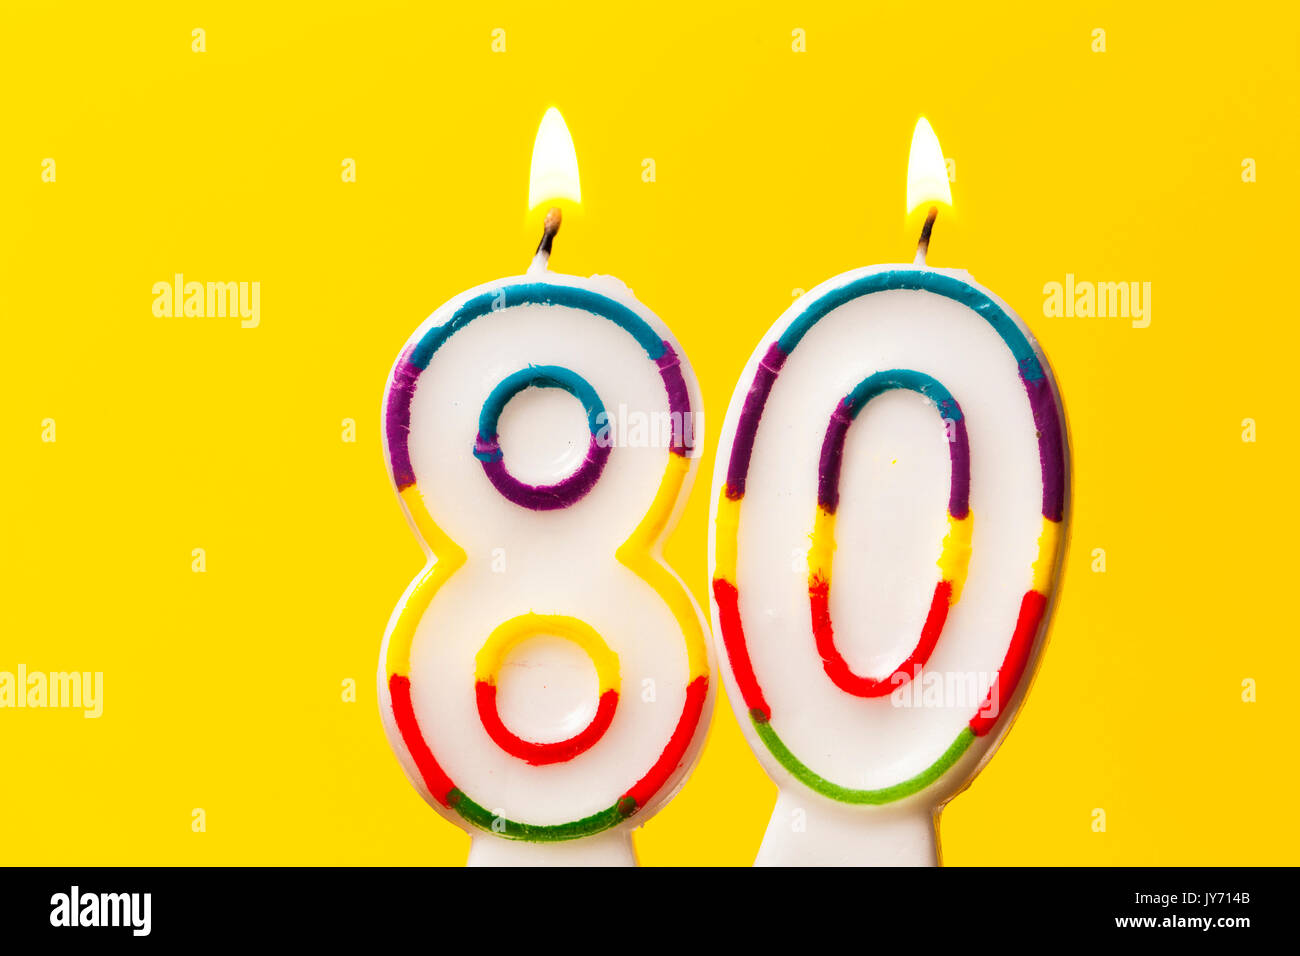 Number 80 Birthday Celebration Candle Against A Bright Yellow Background